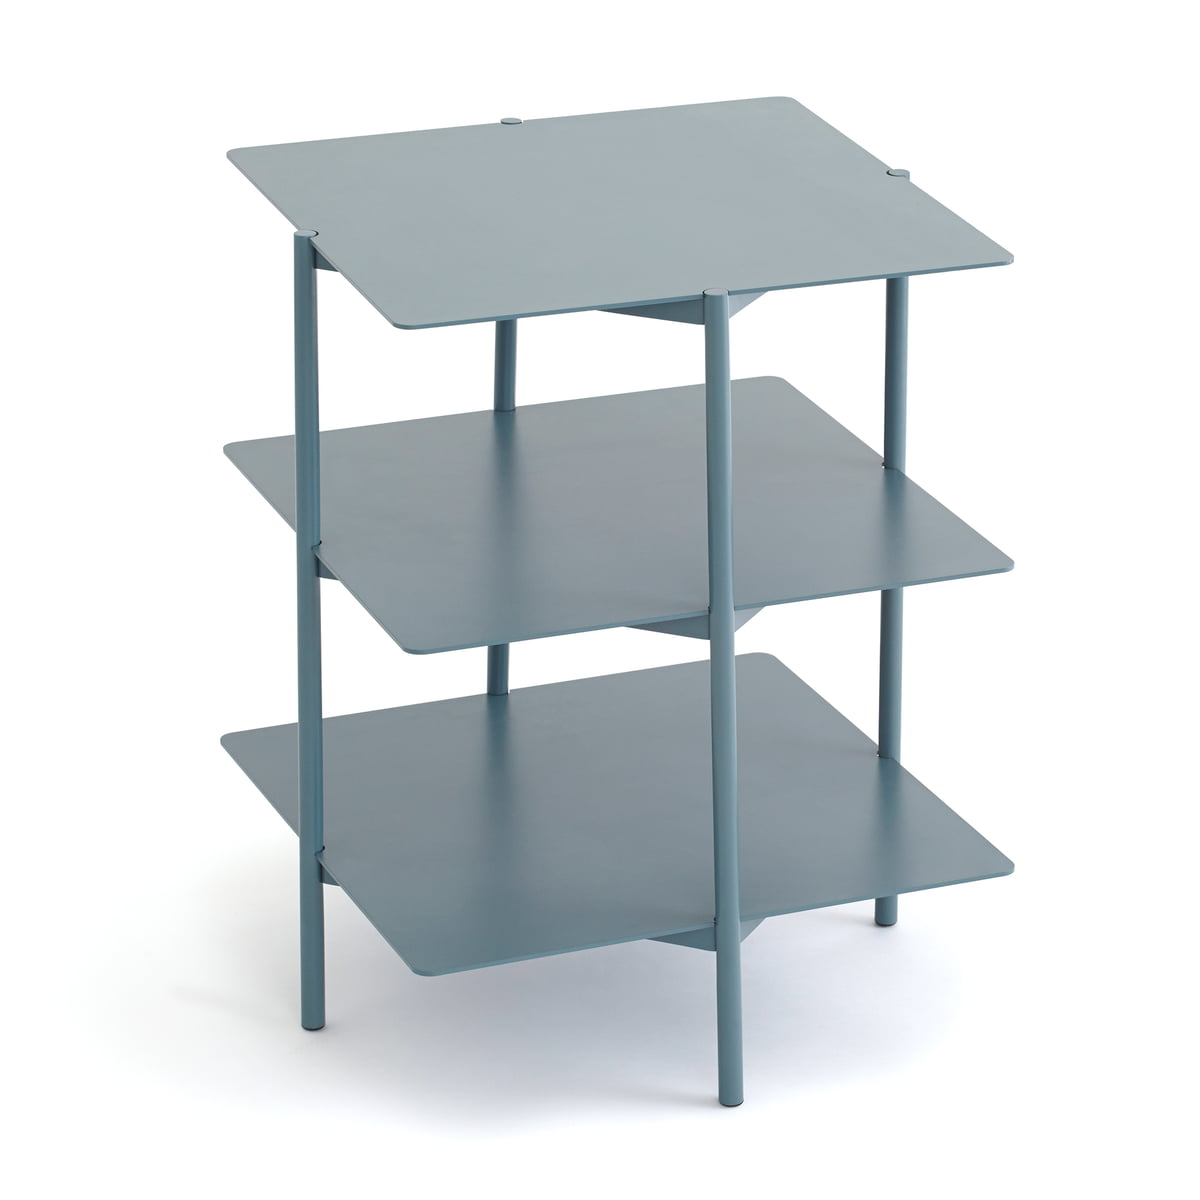 Merveilleux Umbra   Tier Side Table In Marine